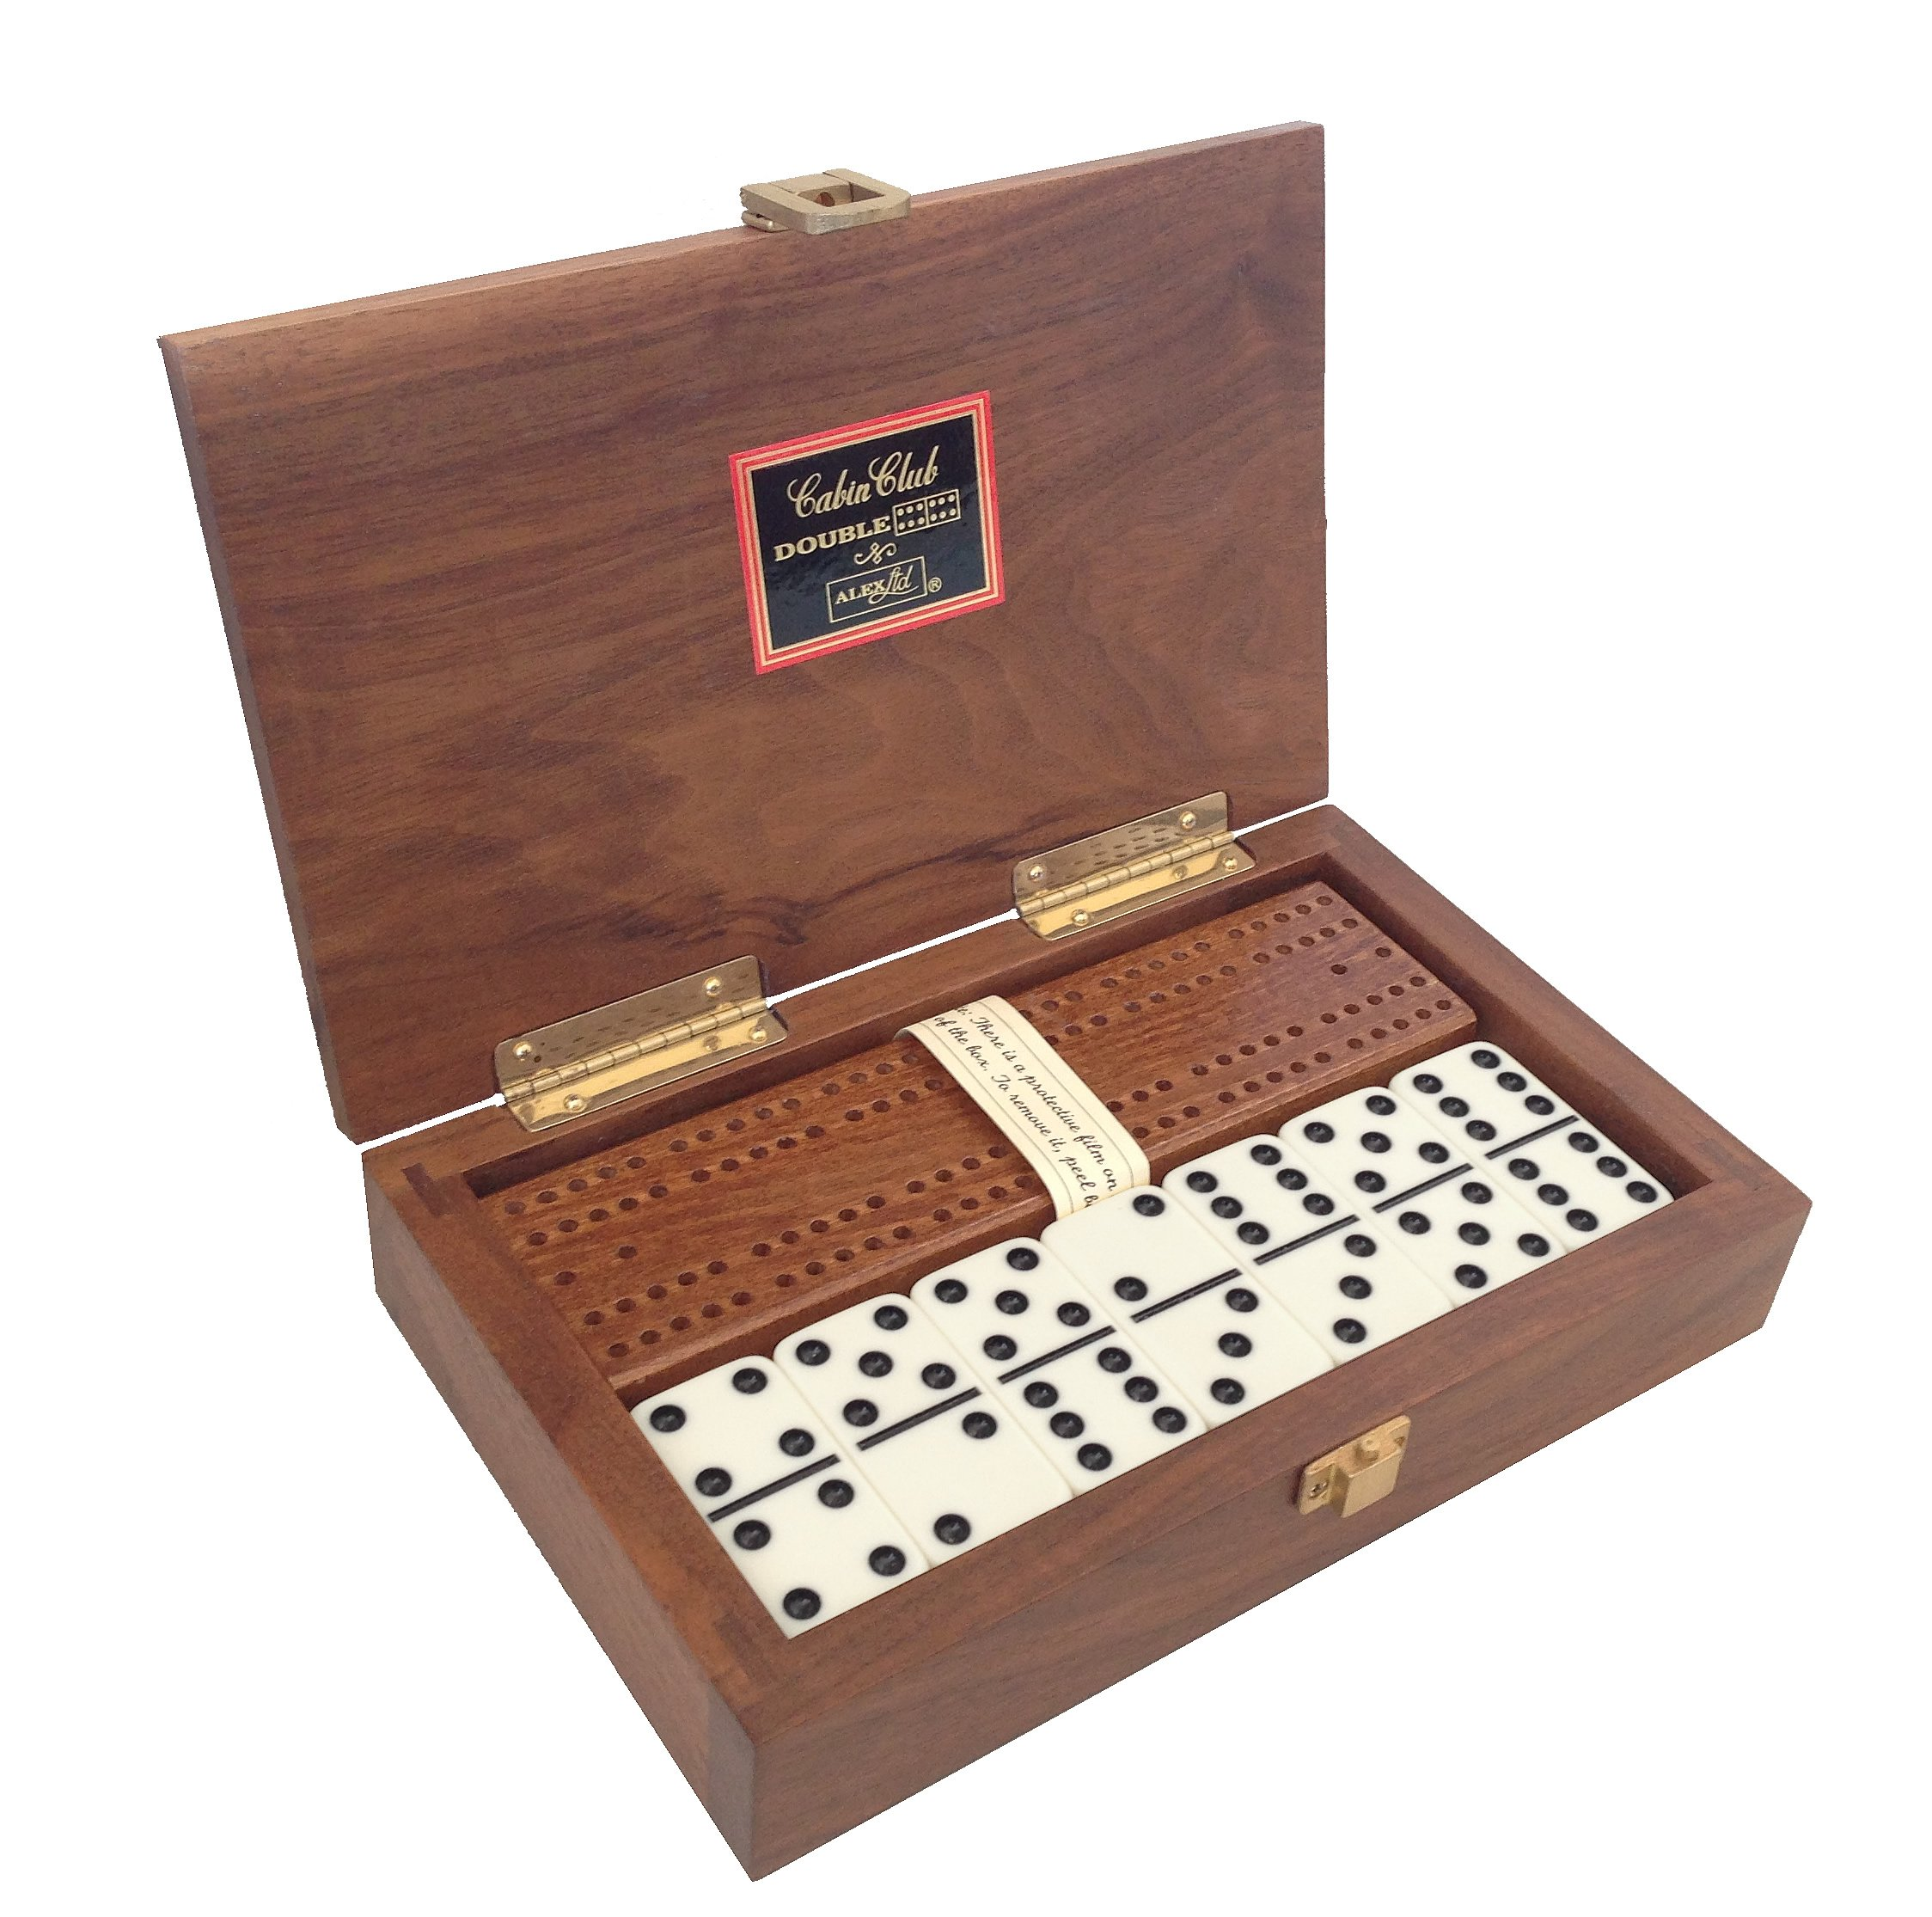 ''Cabin Club'' Classic Domino Set with Black Walnut Case - Premium Quality 28 Indestructible Double-Six Dominoes